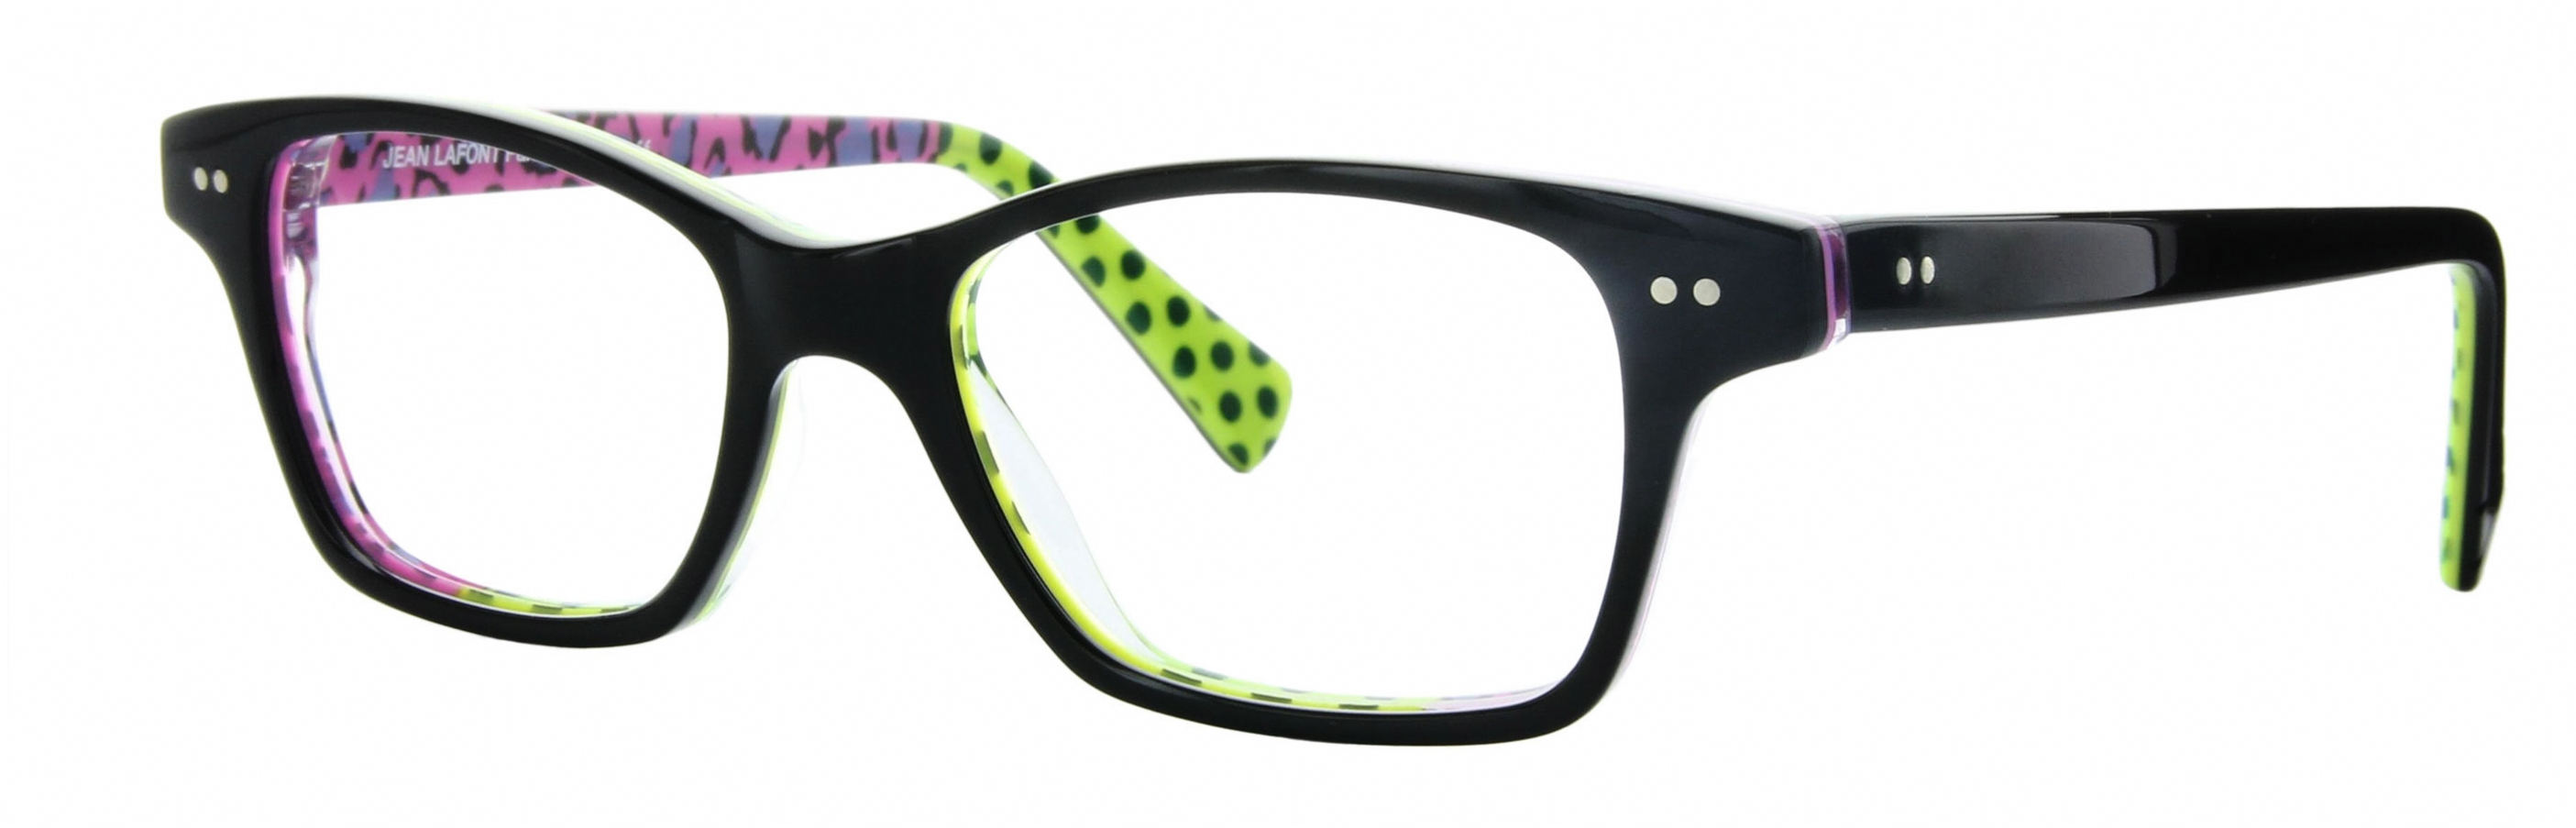 c96a92b8034 Buy Lafont Eyeglasses directly from www.lesbauxdeprovence.com